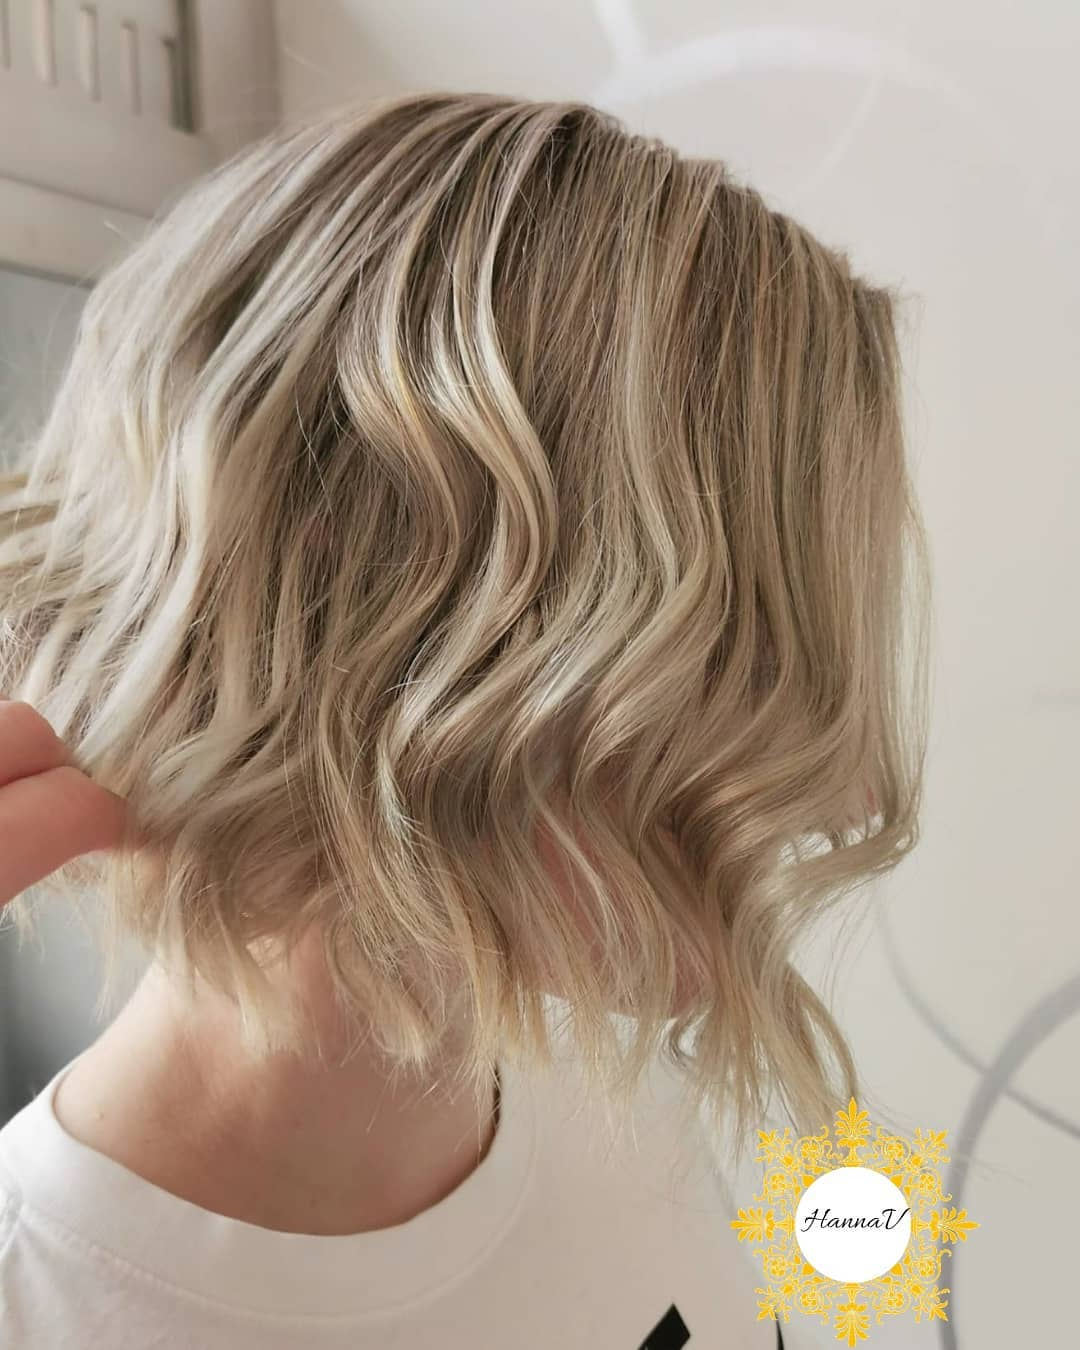 Popular Bob Hairstyles for Women 2020 09